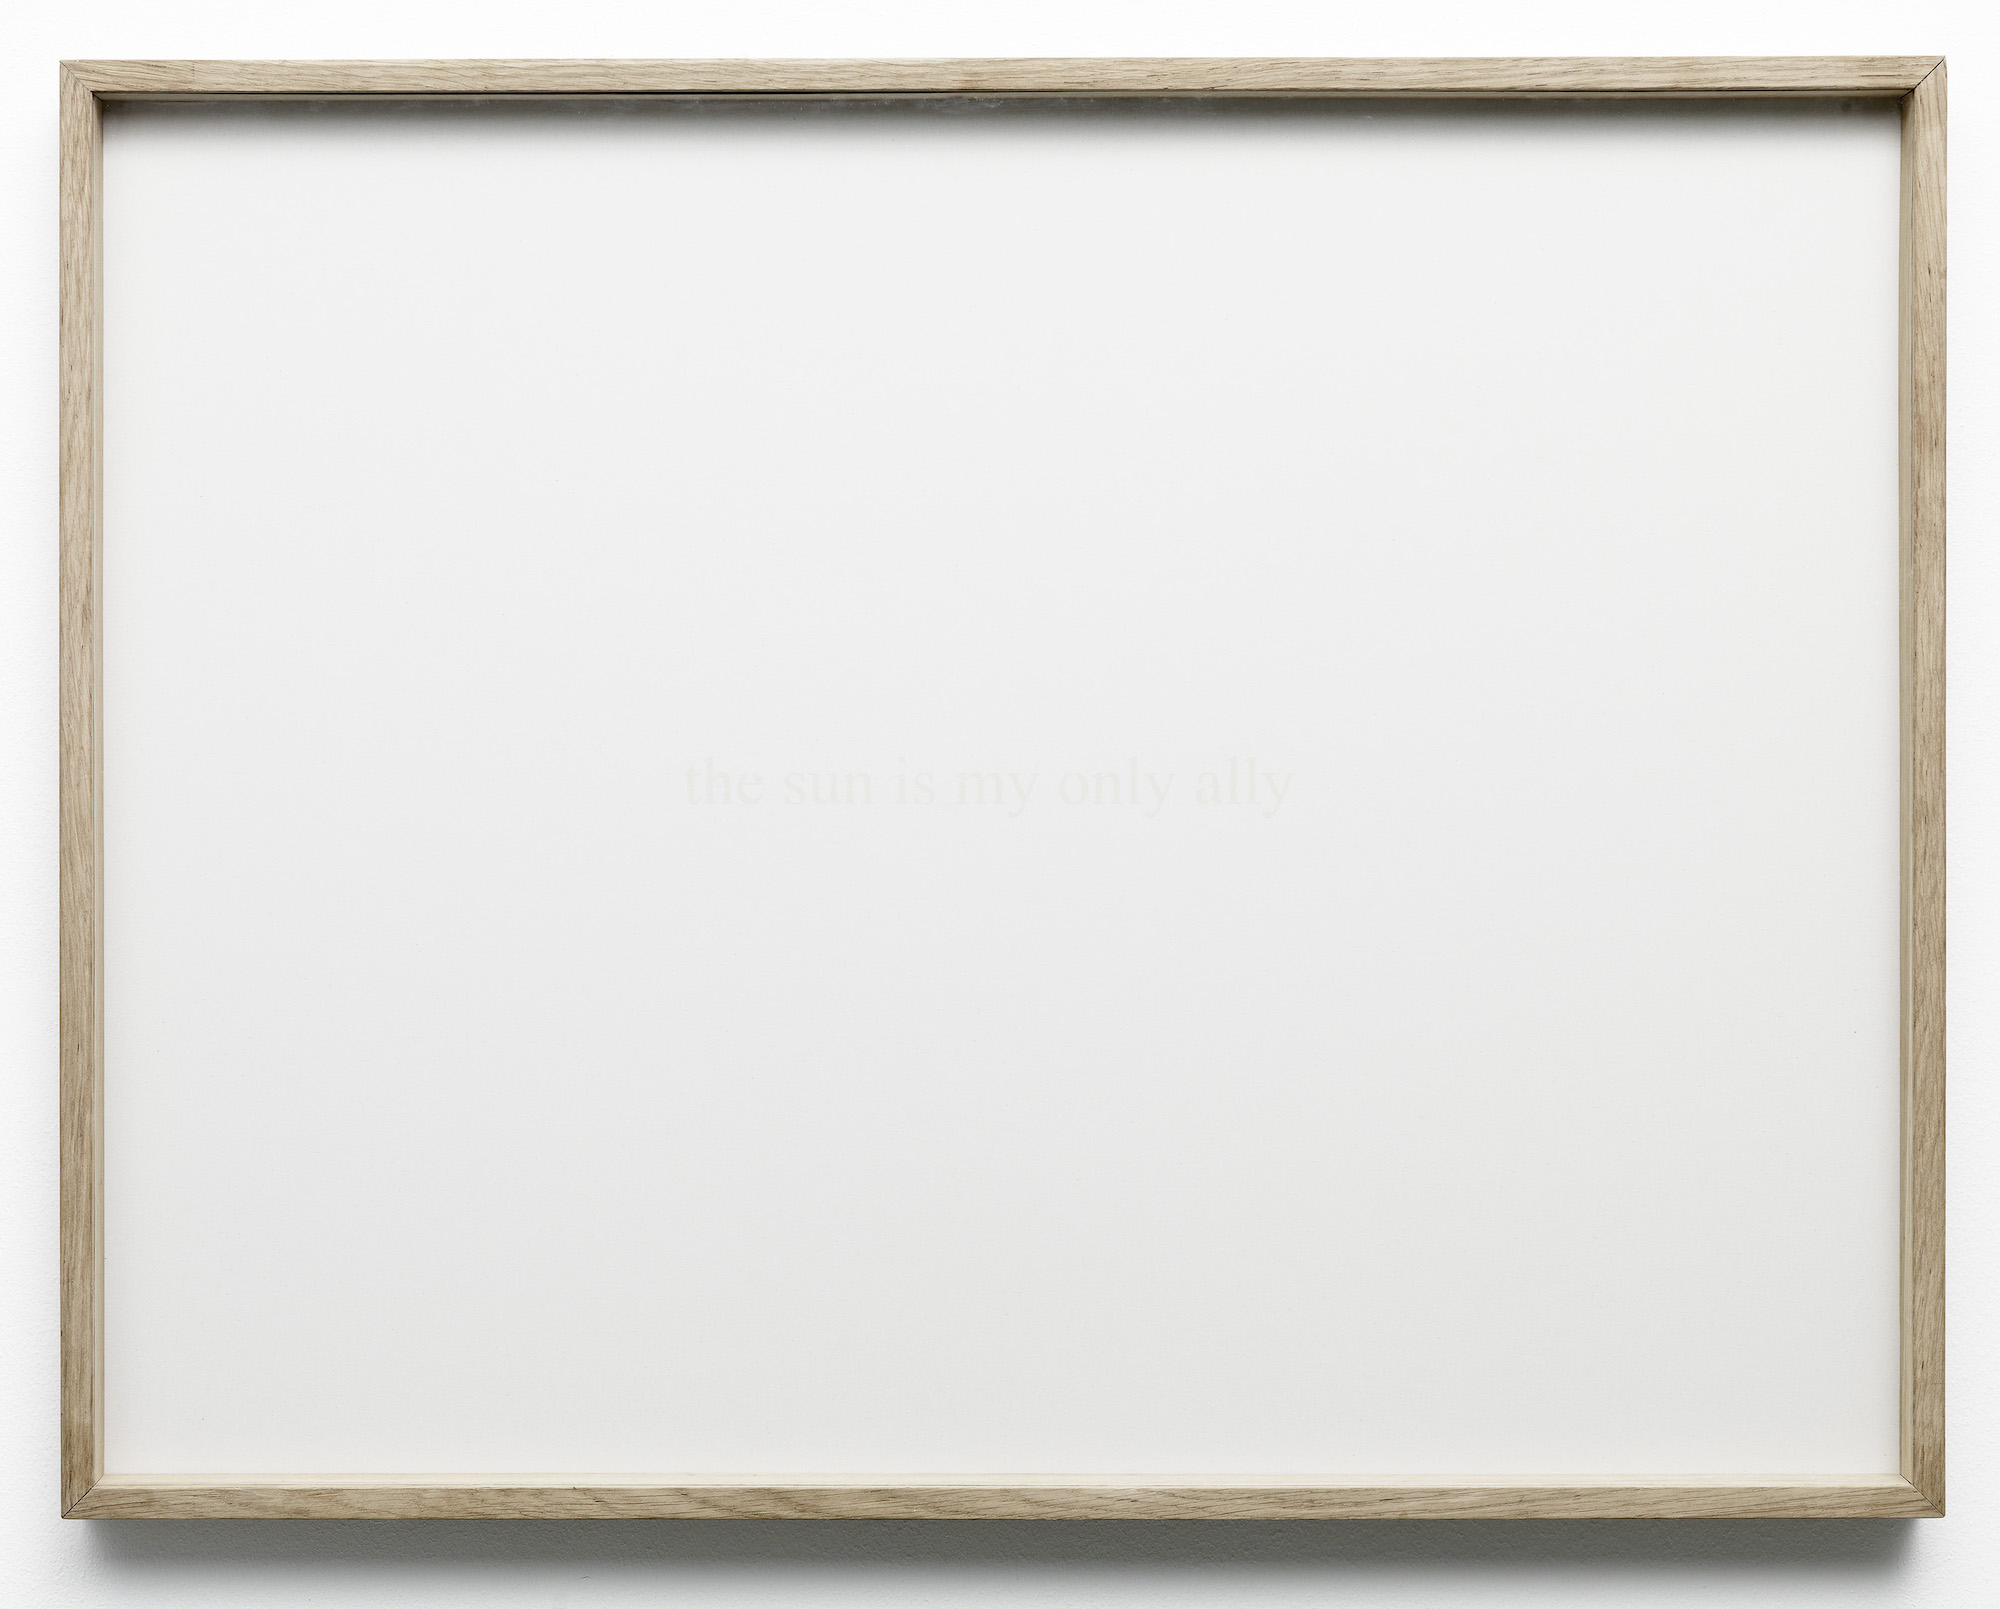 Charbel-joseph H. Boutros  The sun is my only ally 2012 Wooden frame, newspaper print, sun of Beirut 55 x 75 cm